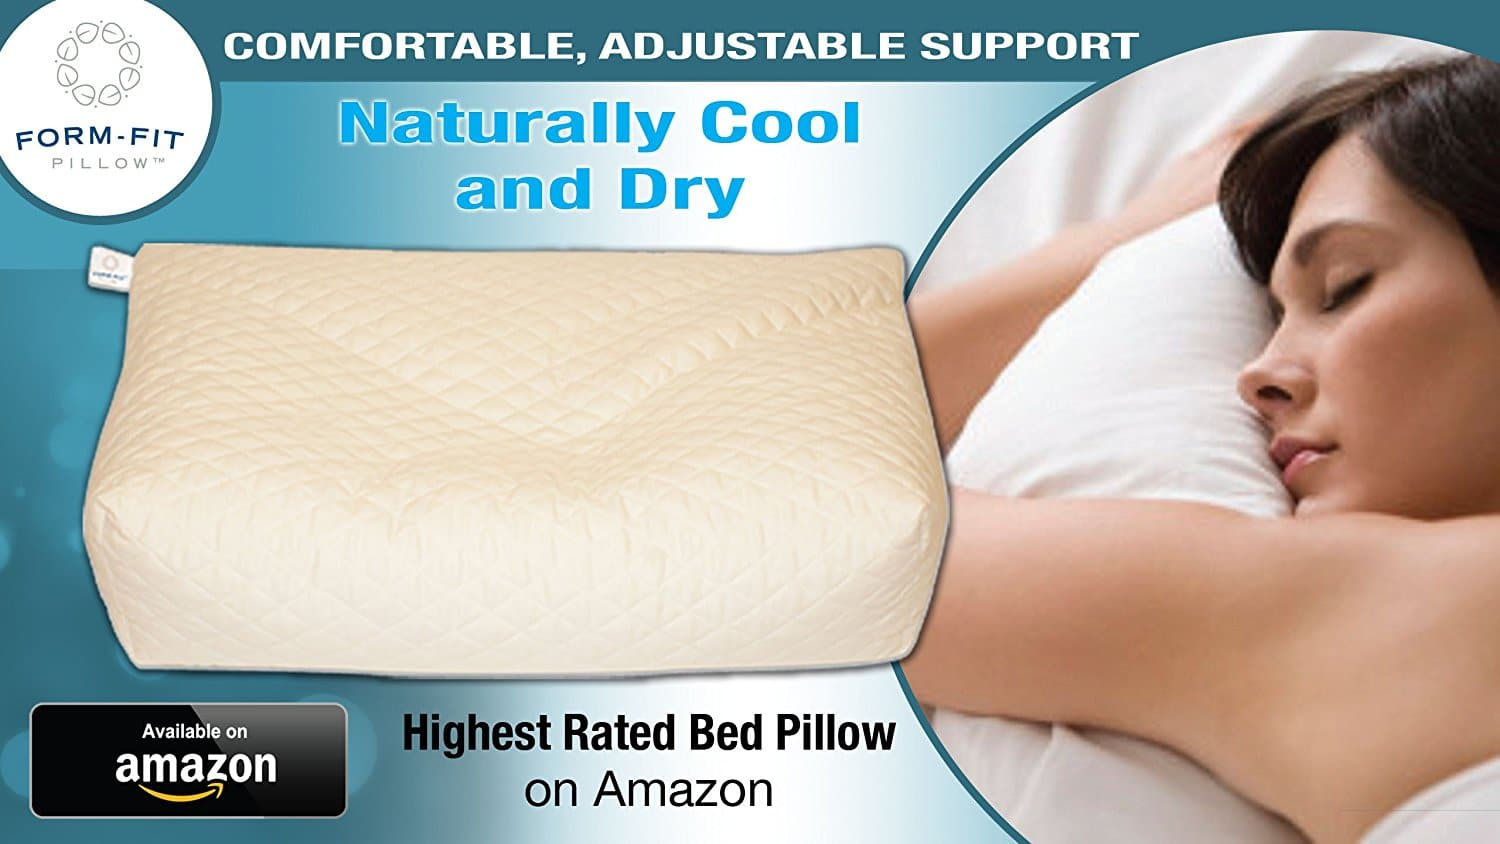 stomach sleeper pillow - Cool & Natural Form-Fit Pillow--Quilted Bamboo Shell